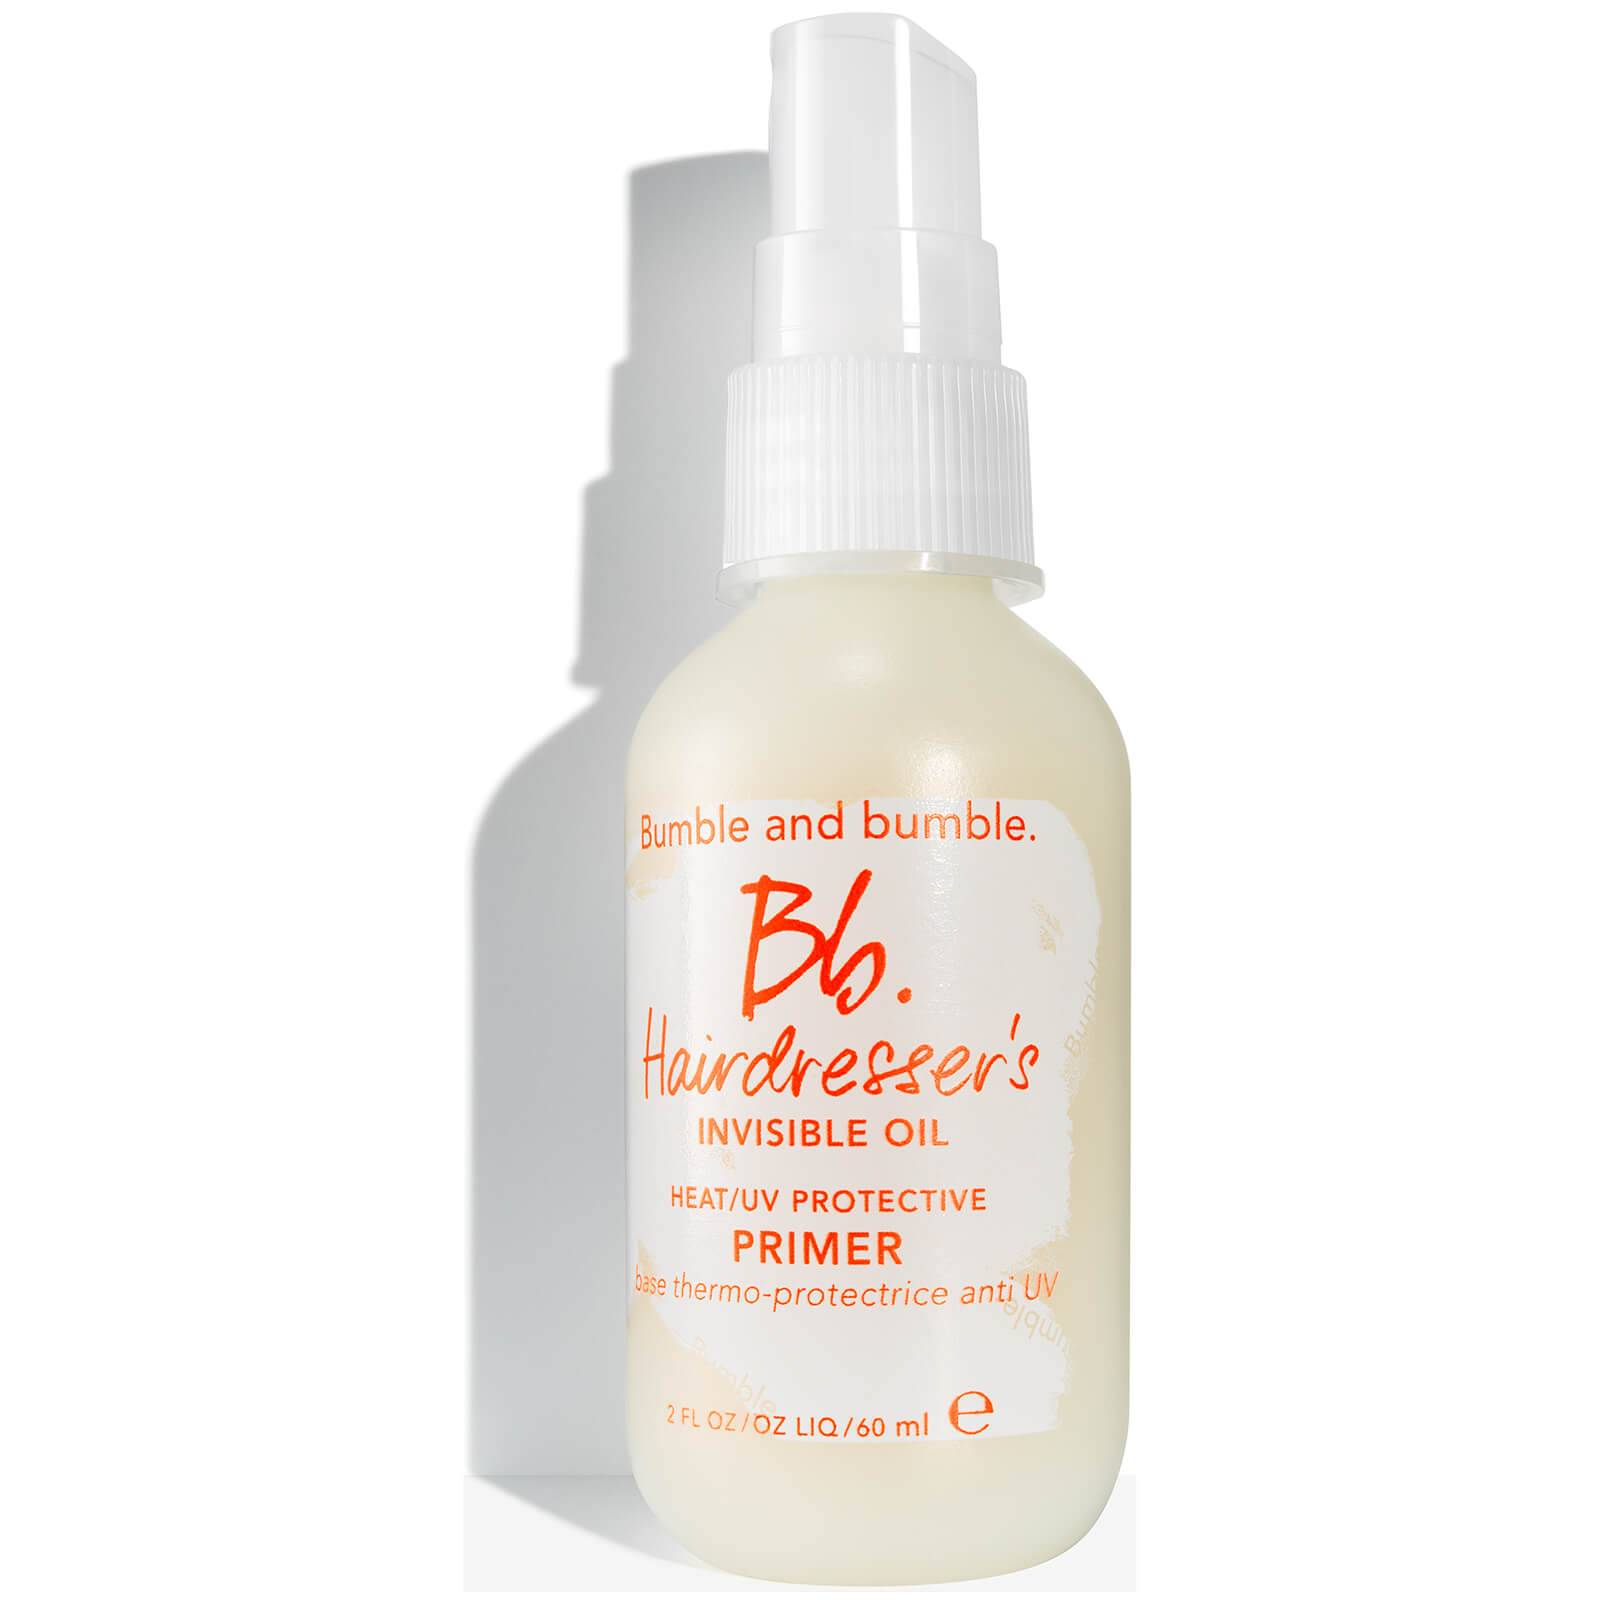 Bumble and bumble Base de coiffage thermo-protectrice anti UV Hairdresser's Invisible Oil Bumble and bumble 60 ml